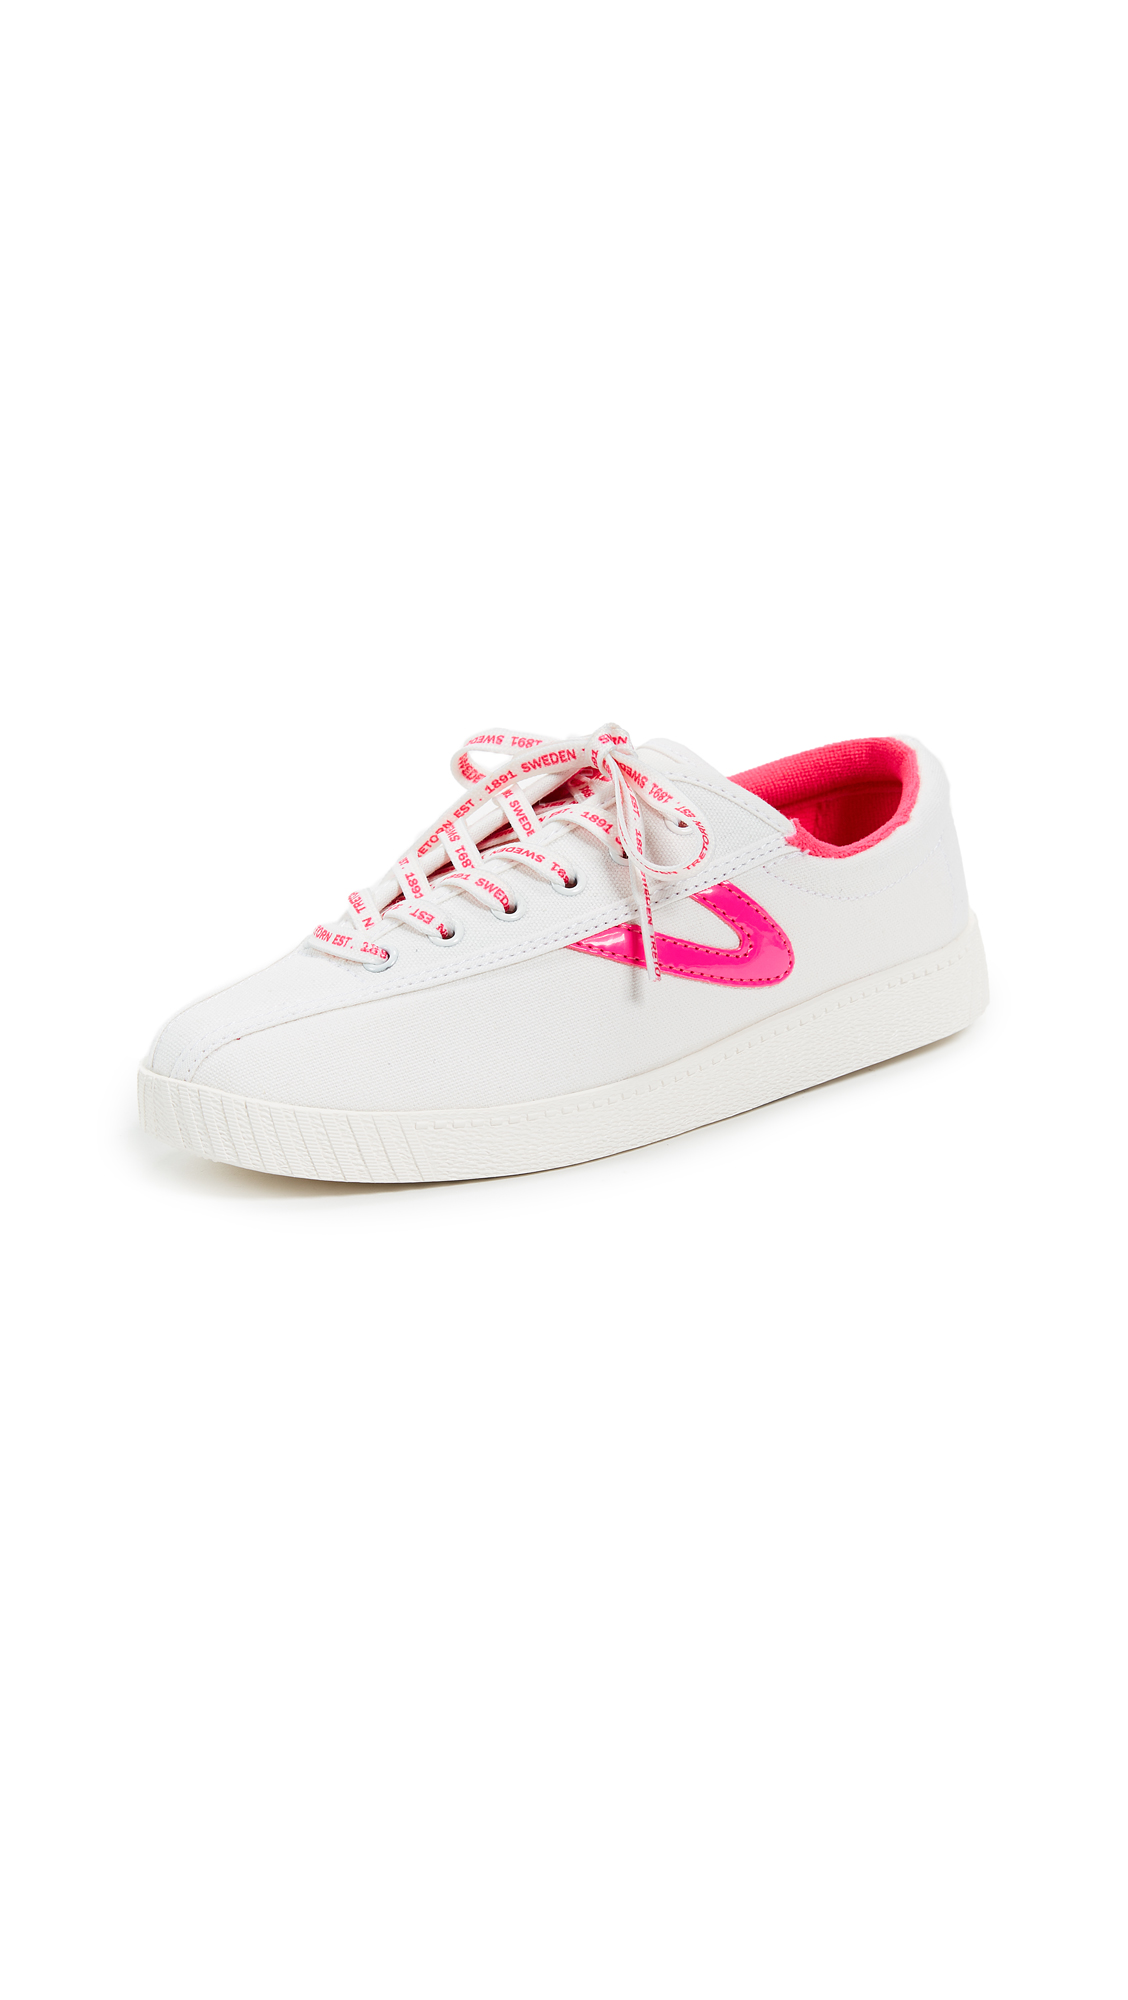 Tretorn Nylite Plus Lace Up Sneakers - Neon Pink